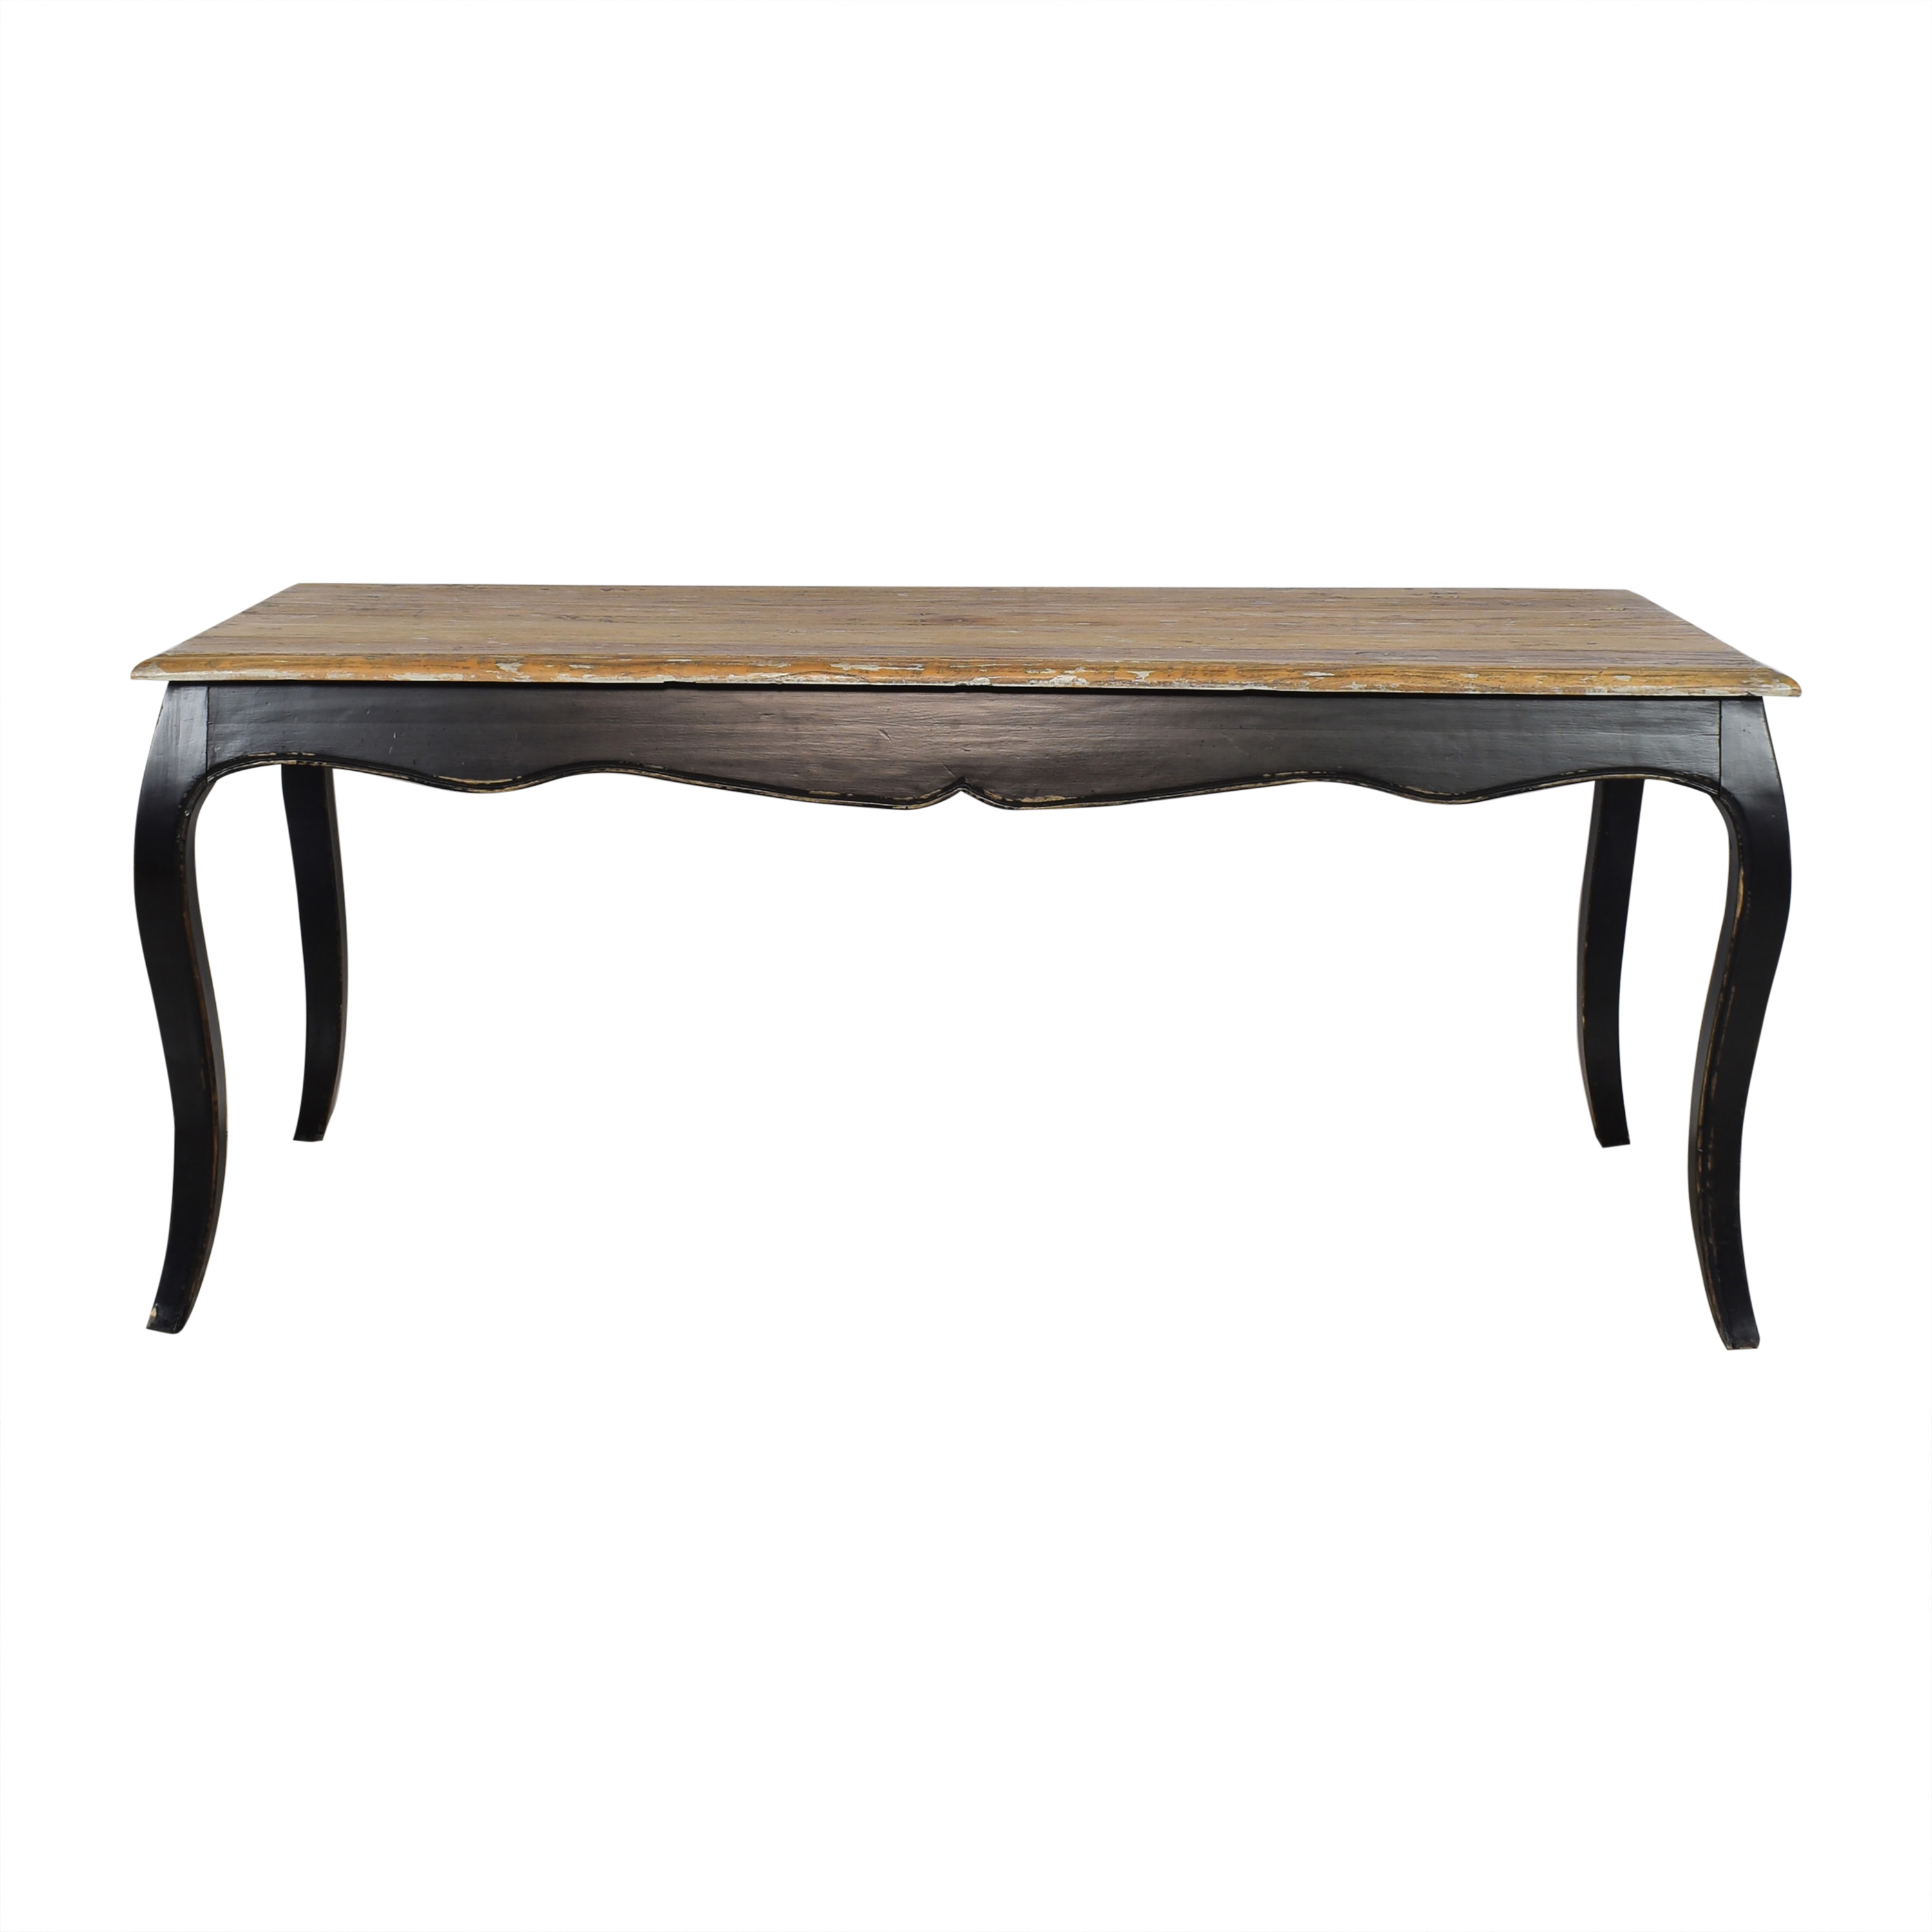 ABC Carpet & Home ABC Carpet & Home Rustic Dining Table coupon